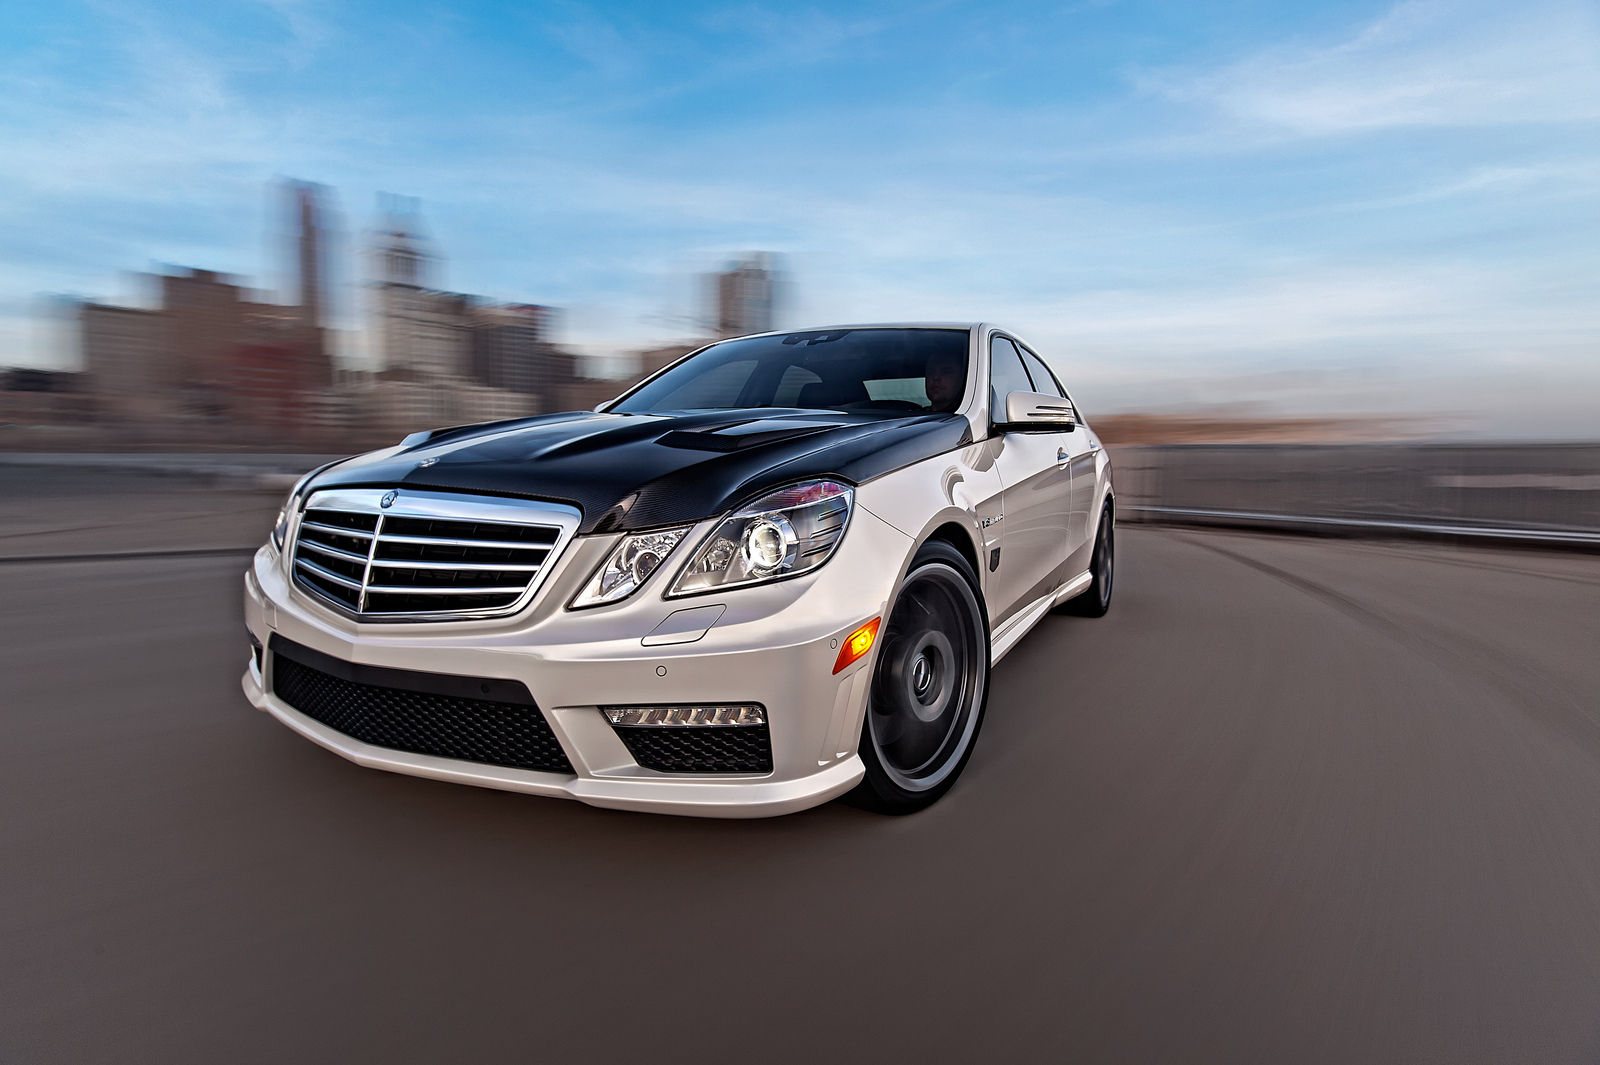 2012 Diamond White Mercedes-Benz E63 AMG MHP S2+ picture, mods, upgrades